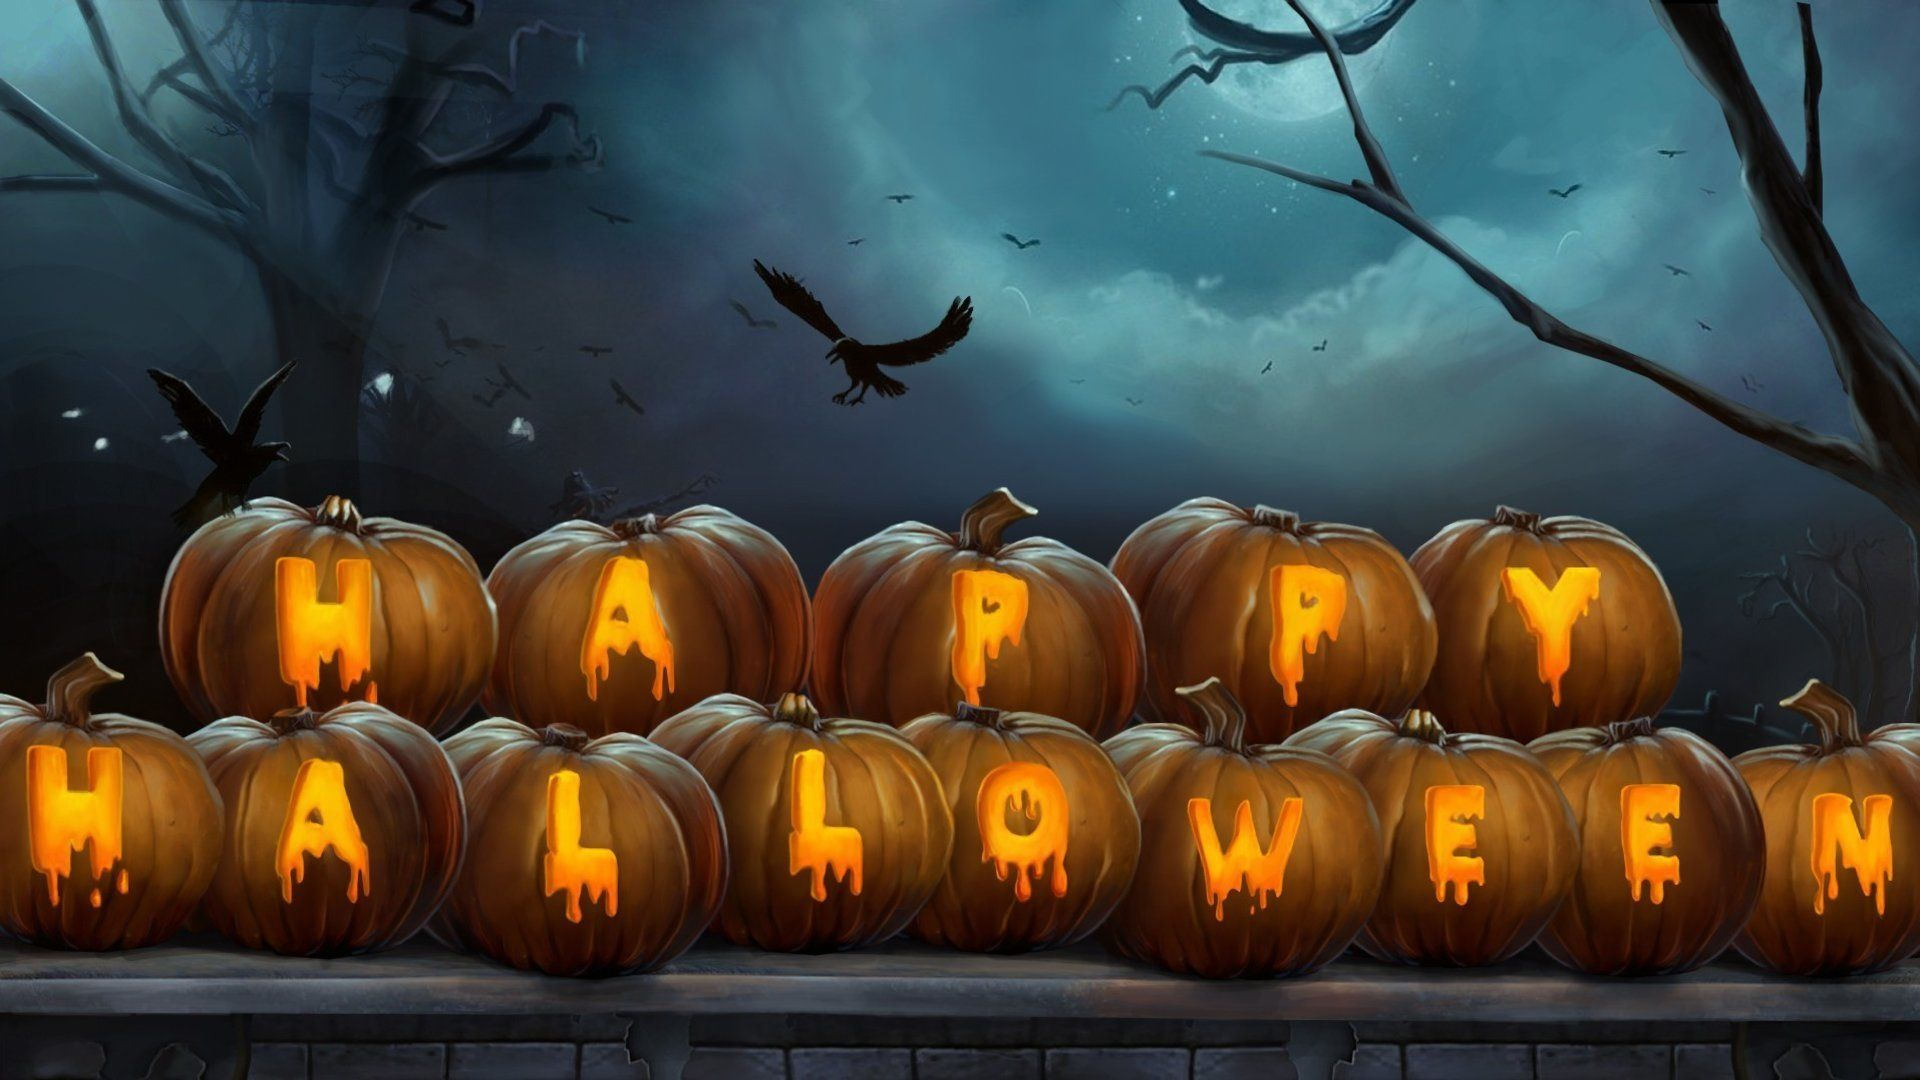 Halloween Wallpaper – Spooky Pictures To Embellish Your Home